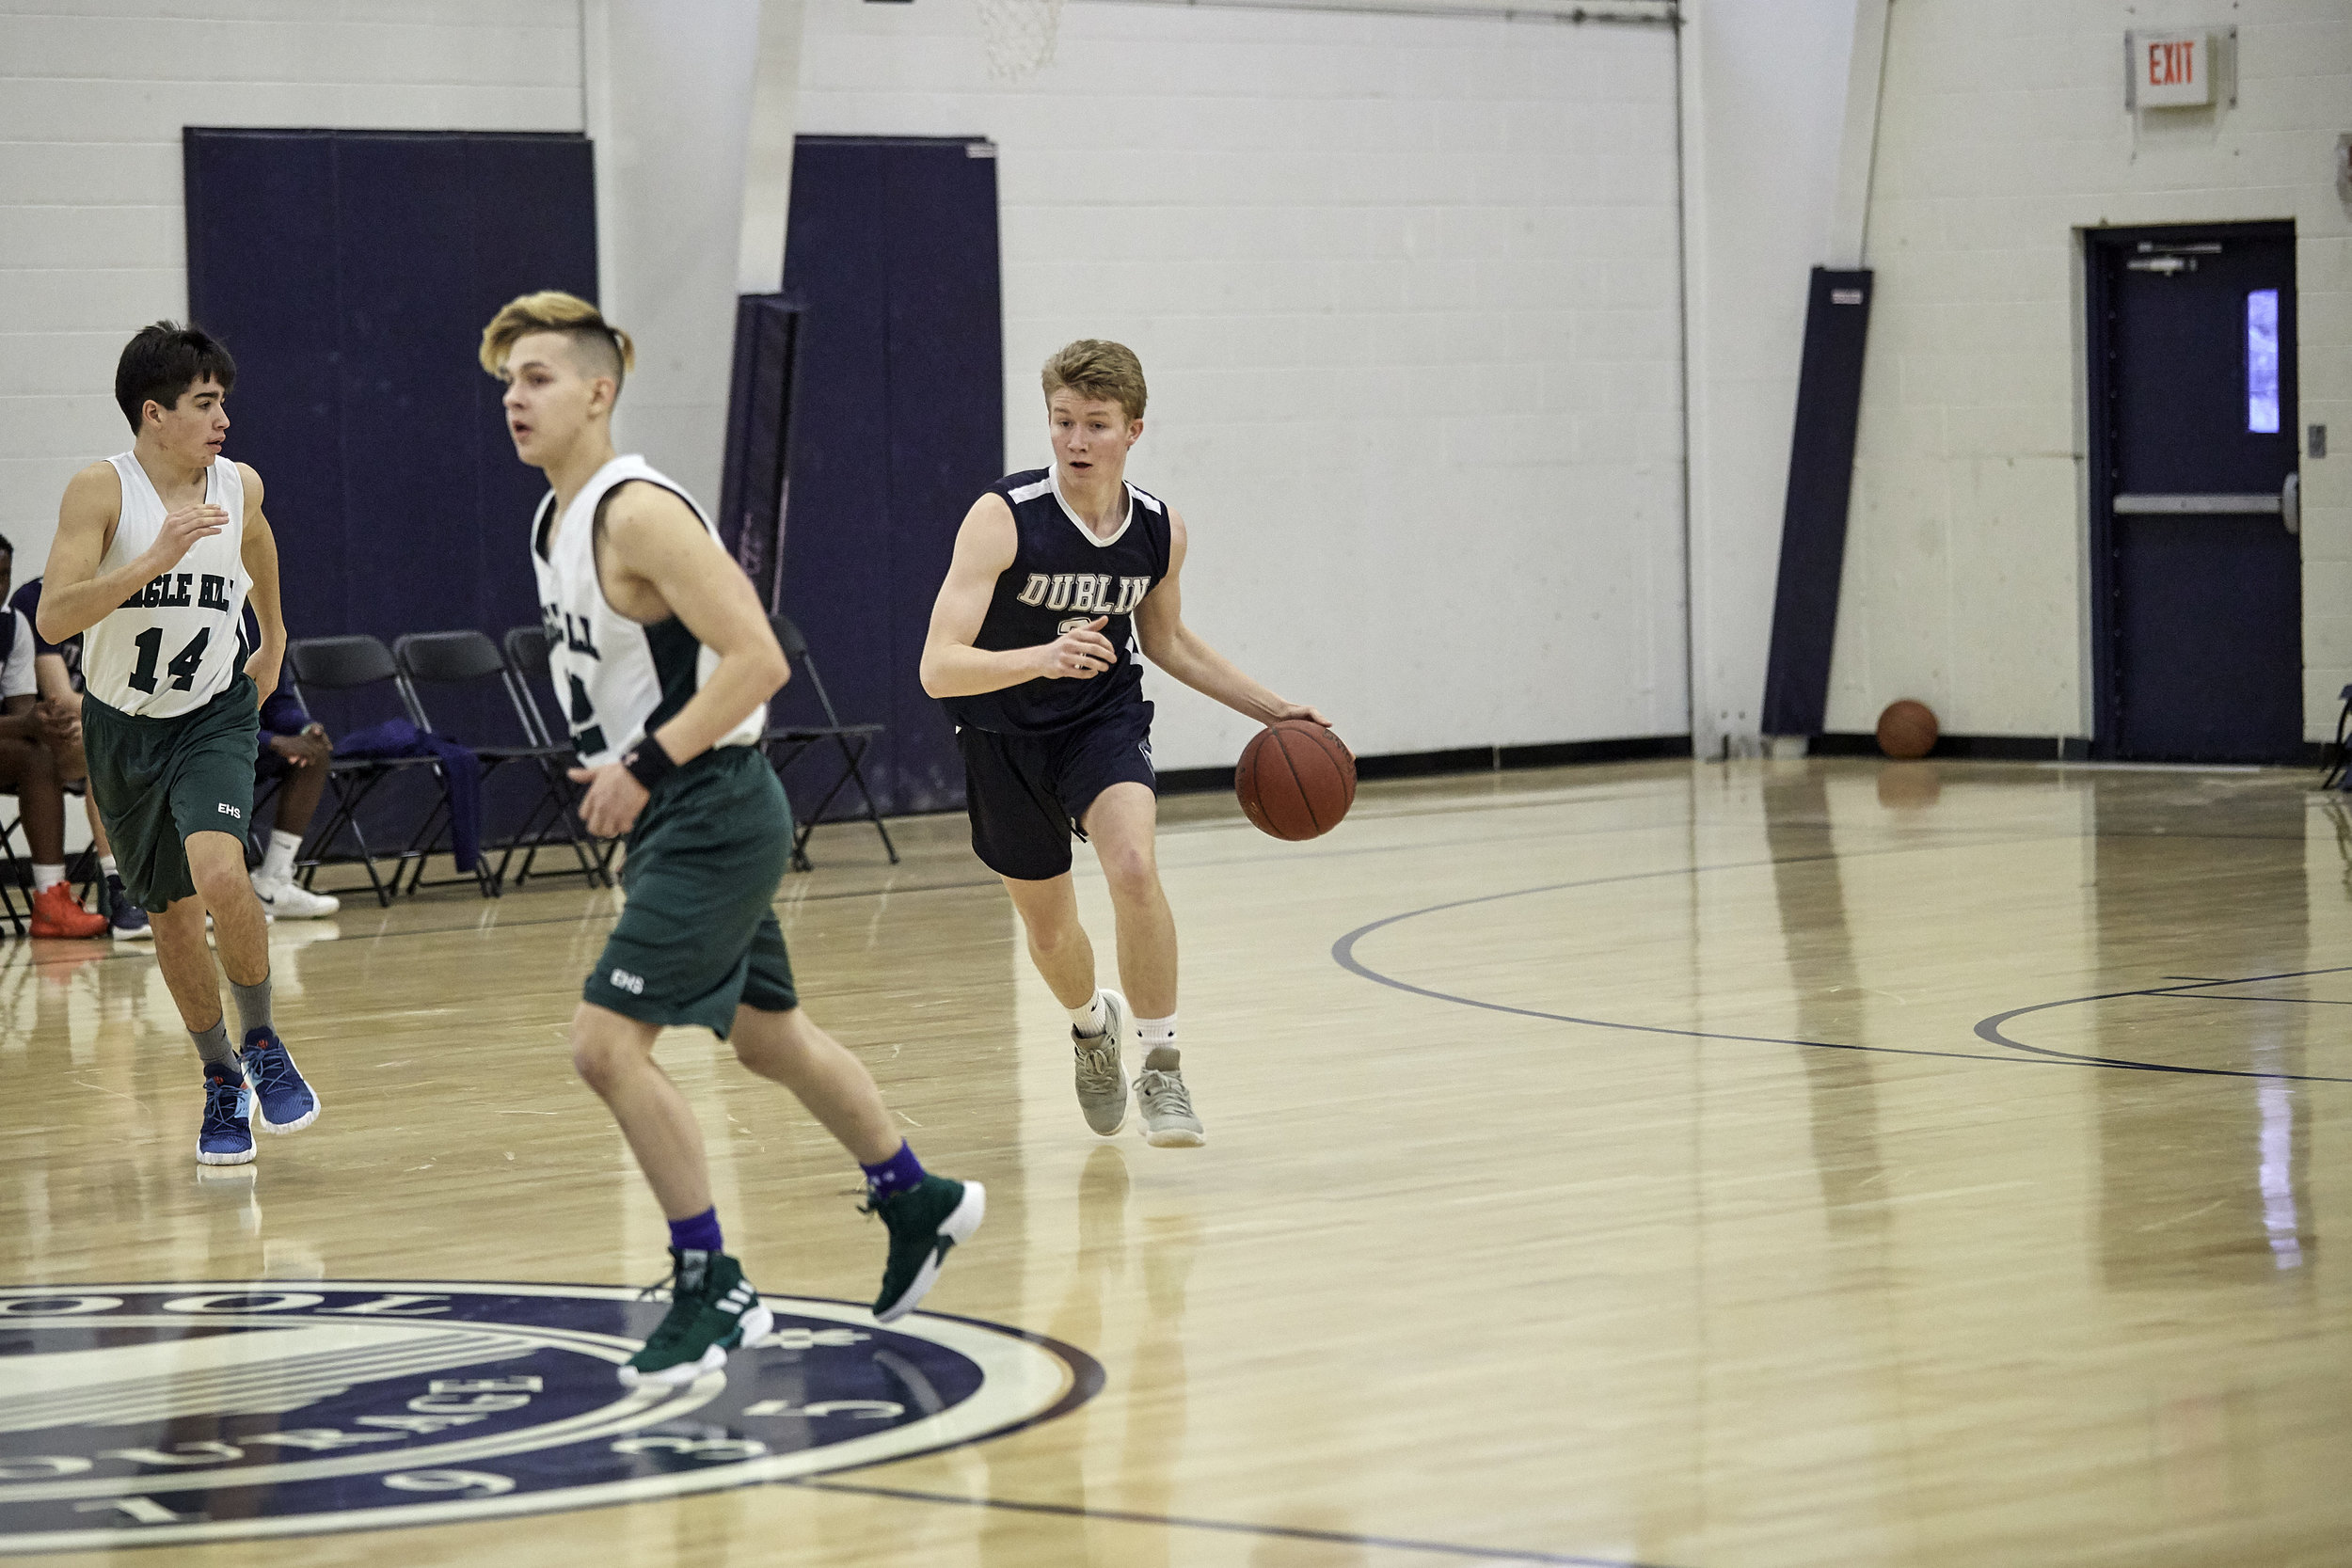 Boys Varsity Basketball vs. Eagle Hill School JV at RVAL Tournament - February 11, 2019 - 167730.jpg